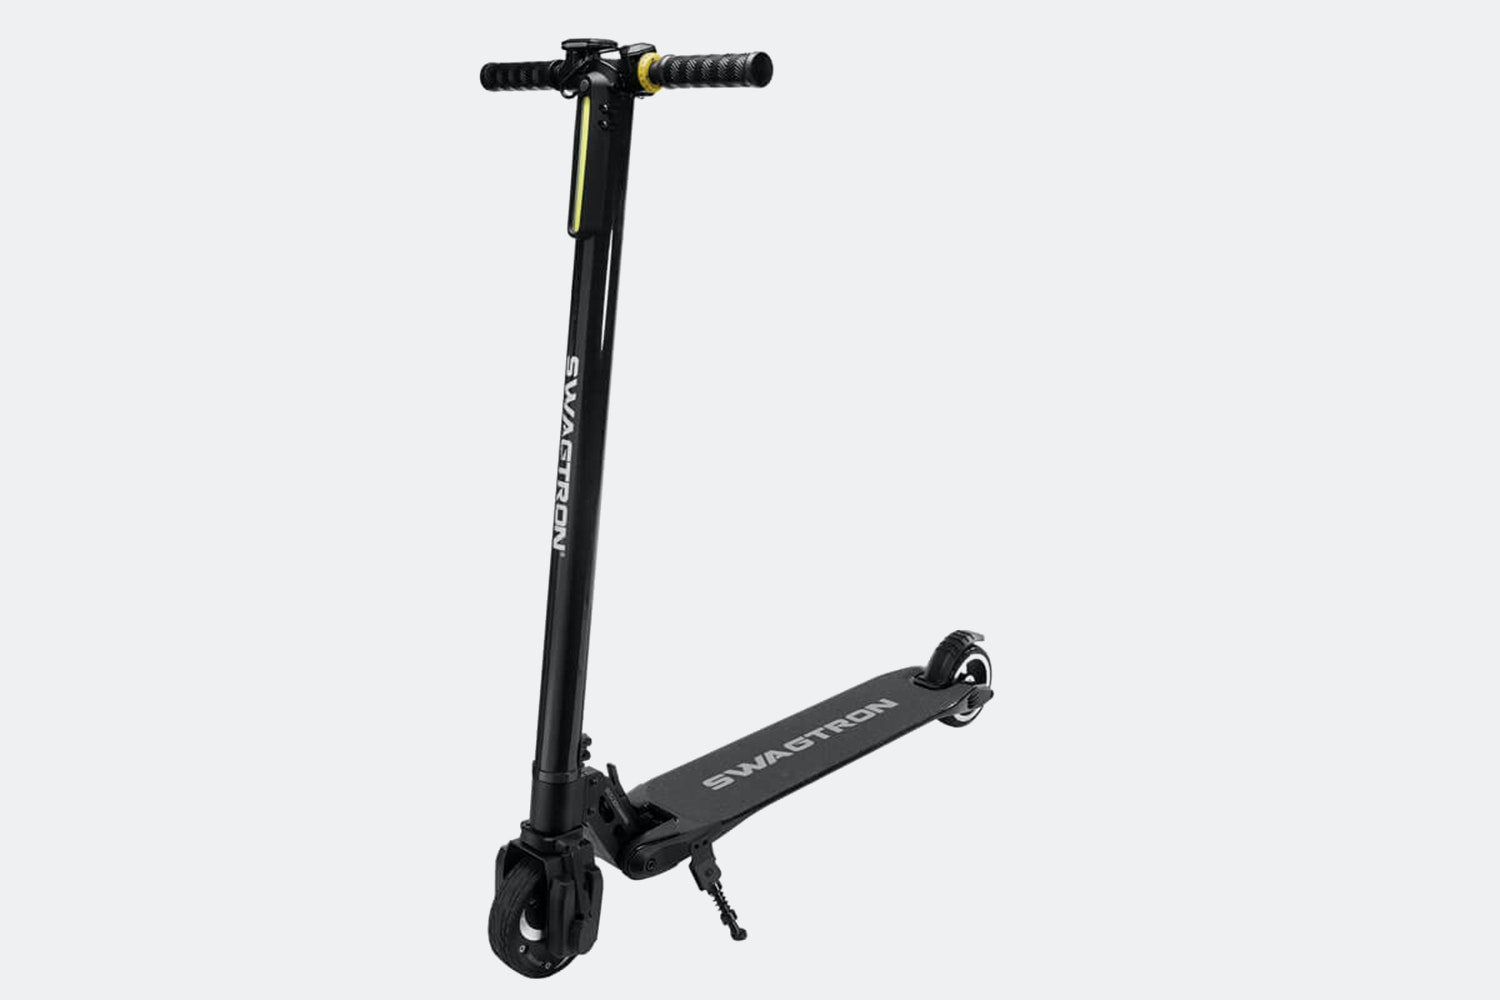 Swagger Electric Scooter Pro in black (+ $90)